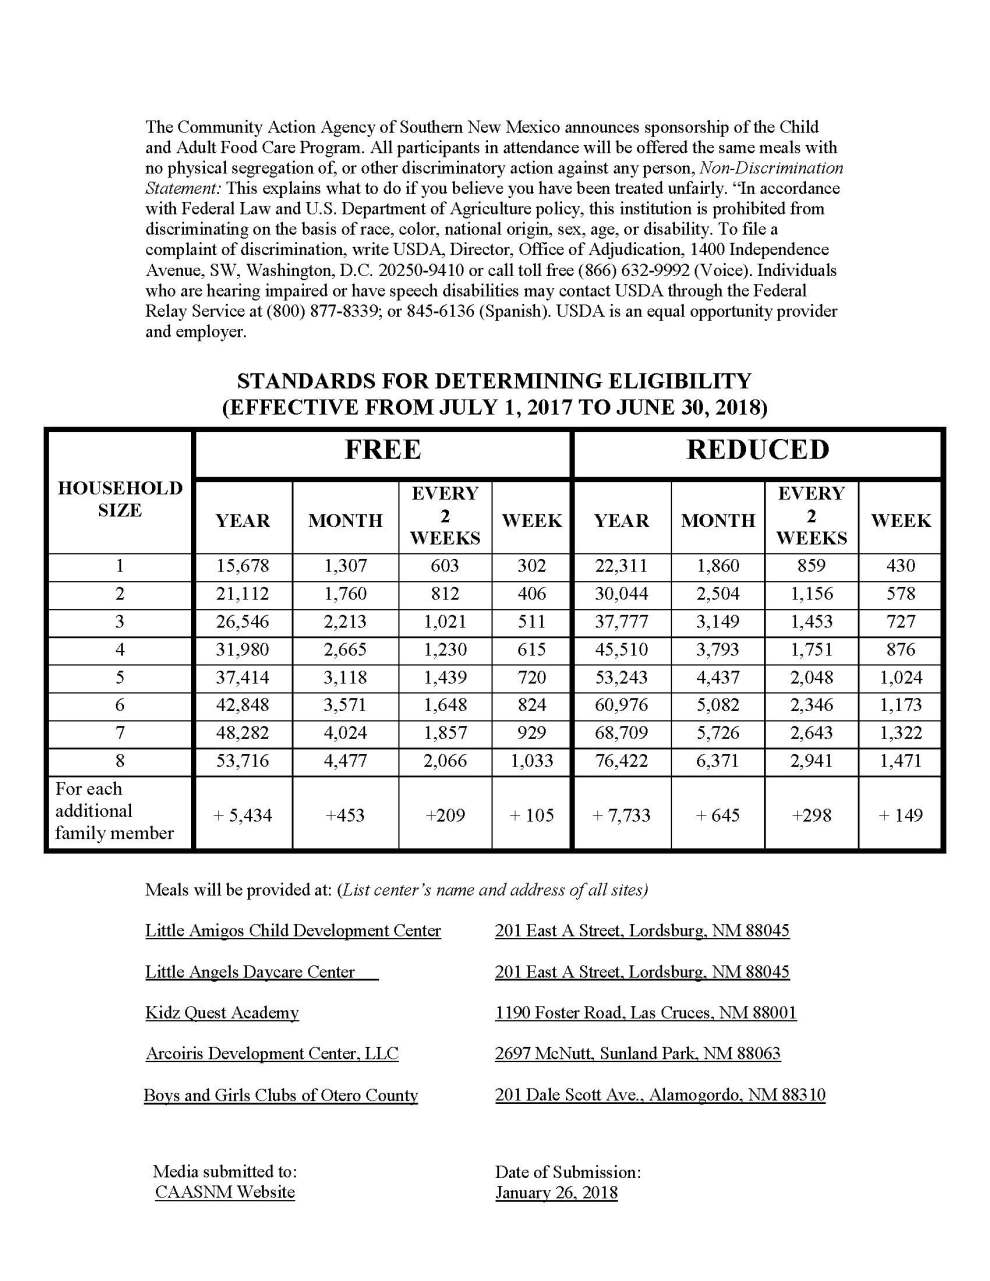 INCOME ELIGIBILITY GUIDELINES 17-18 Homes